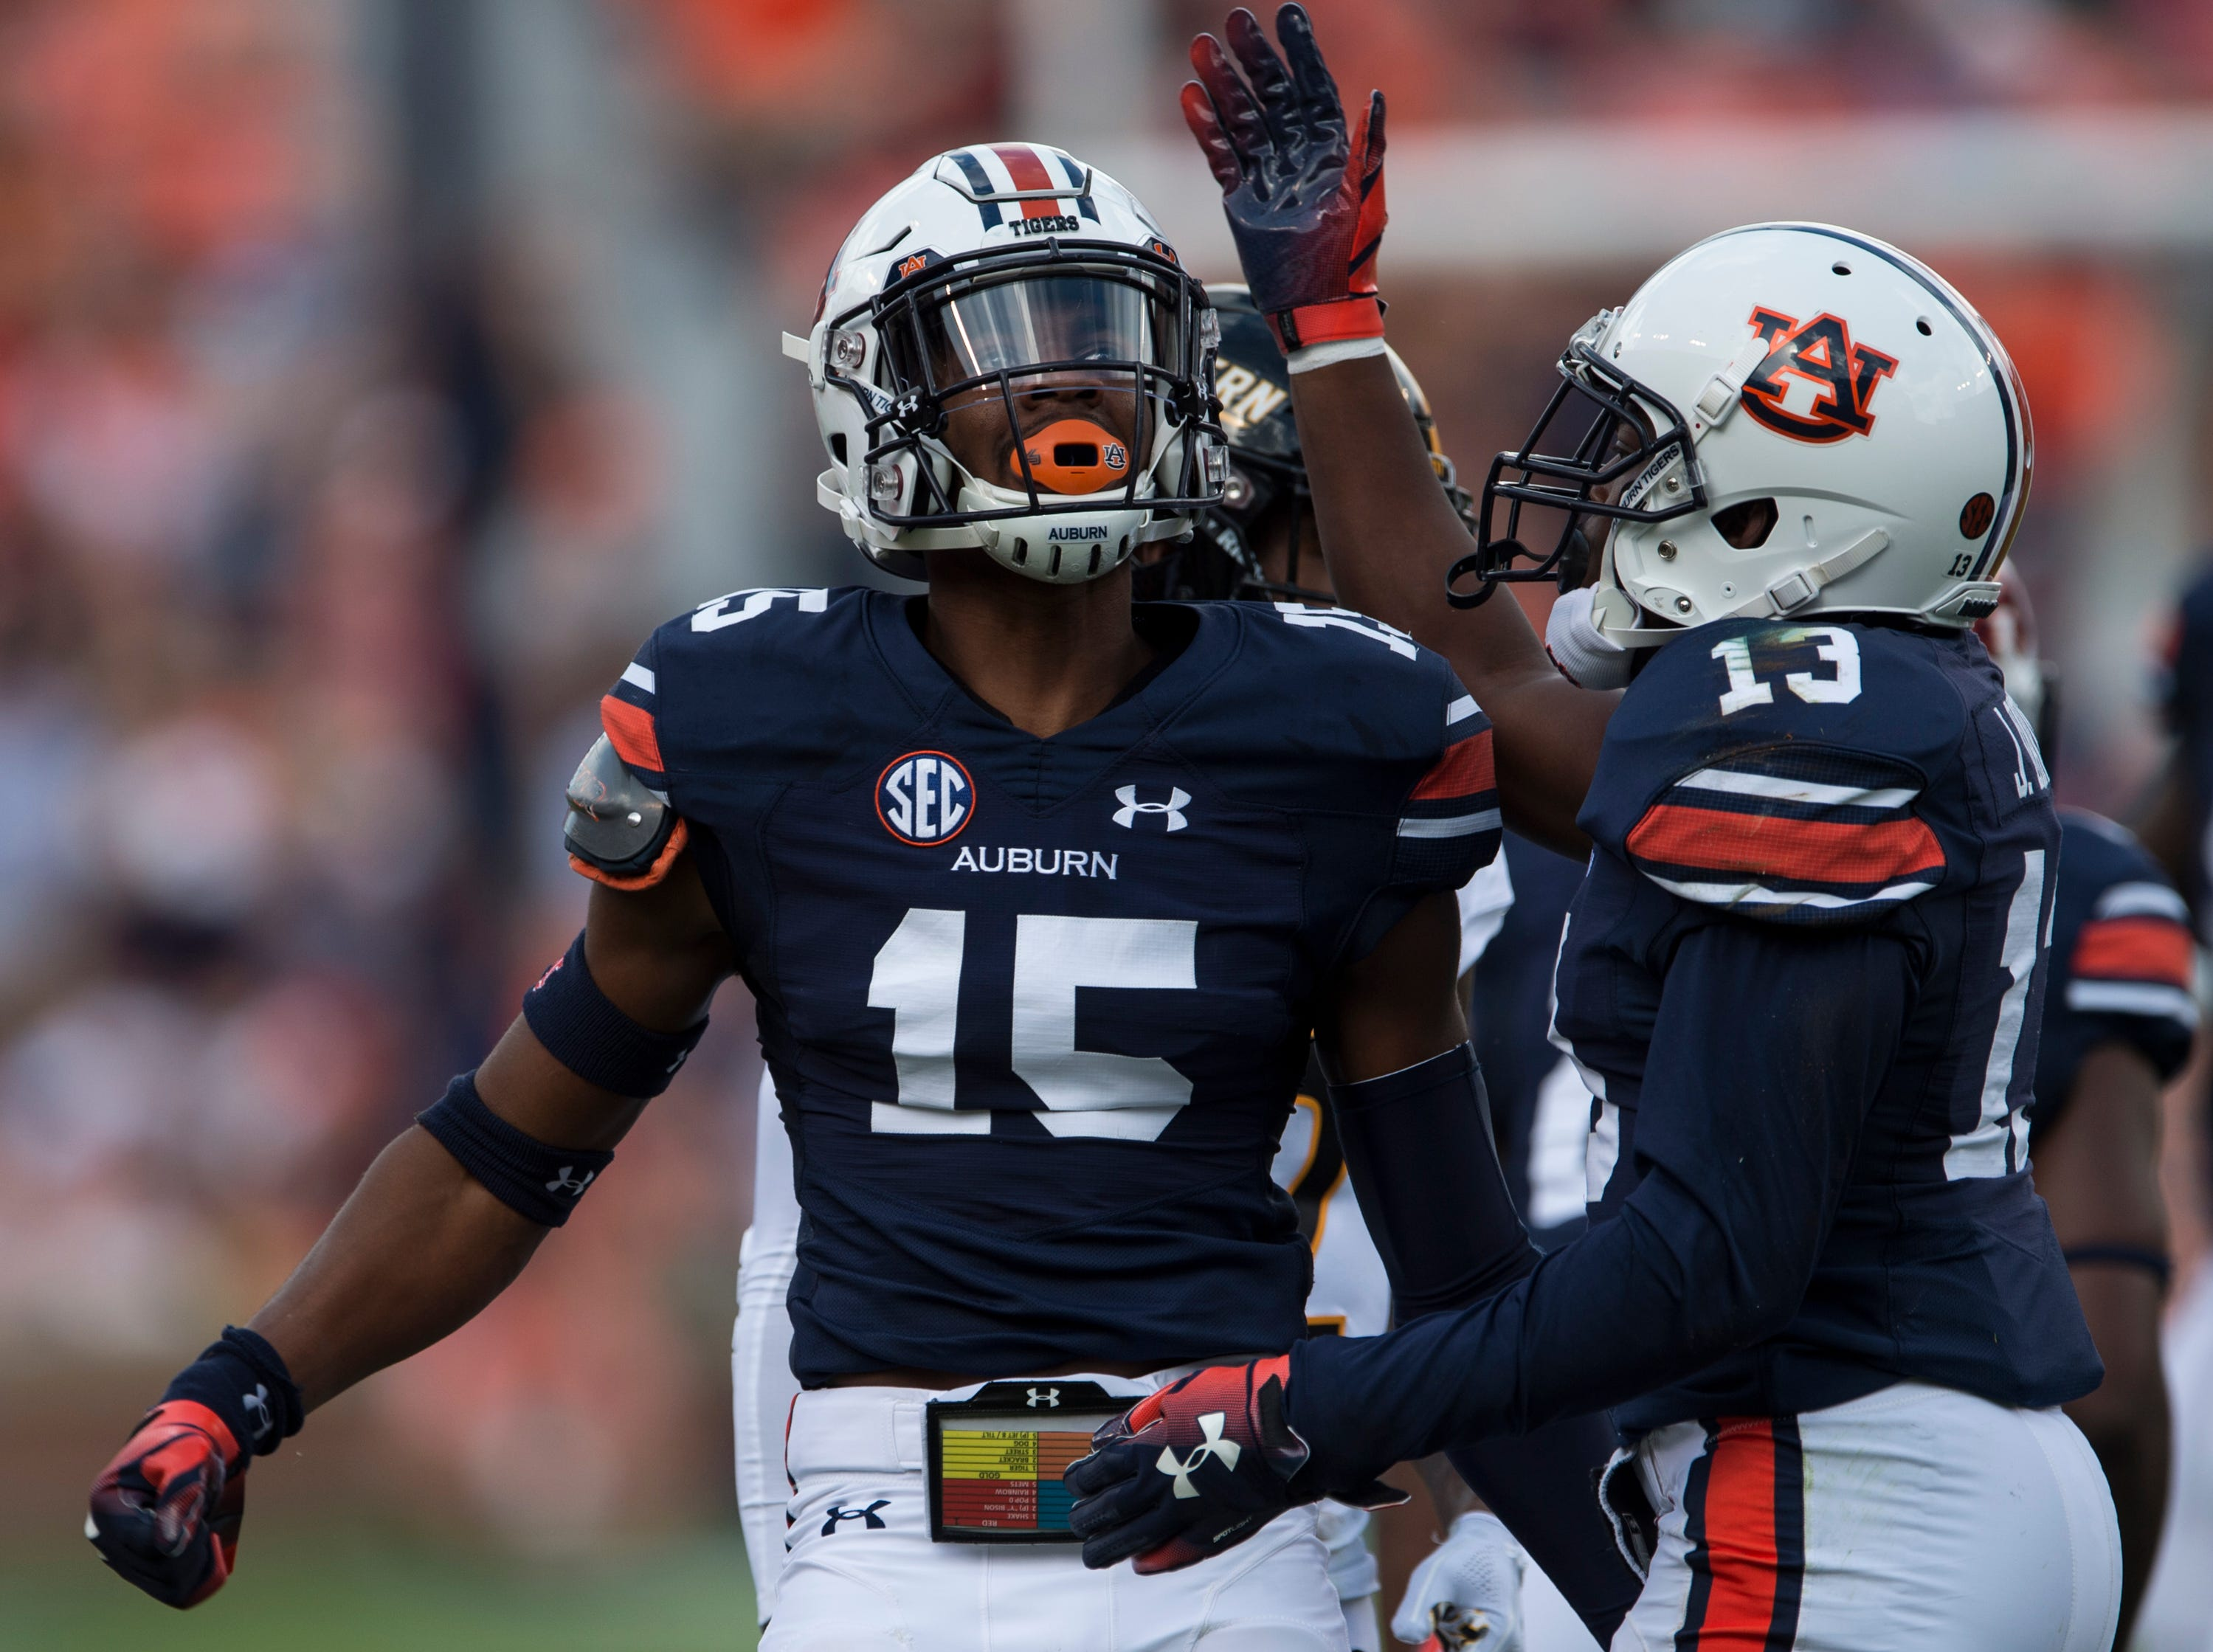 Auburn's Jordyn Peters (15) celebrates a tackle with Javaris Davis (13) at Jordan-Hare Stadium in Auburn, Ala., on Saturday, Sept. 29, 2018. Auburn leads Southern Miss 14-3, the game went into a weather delay with 4:27 left in the second quarter.